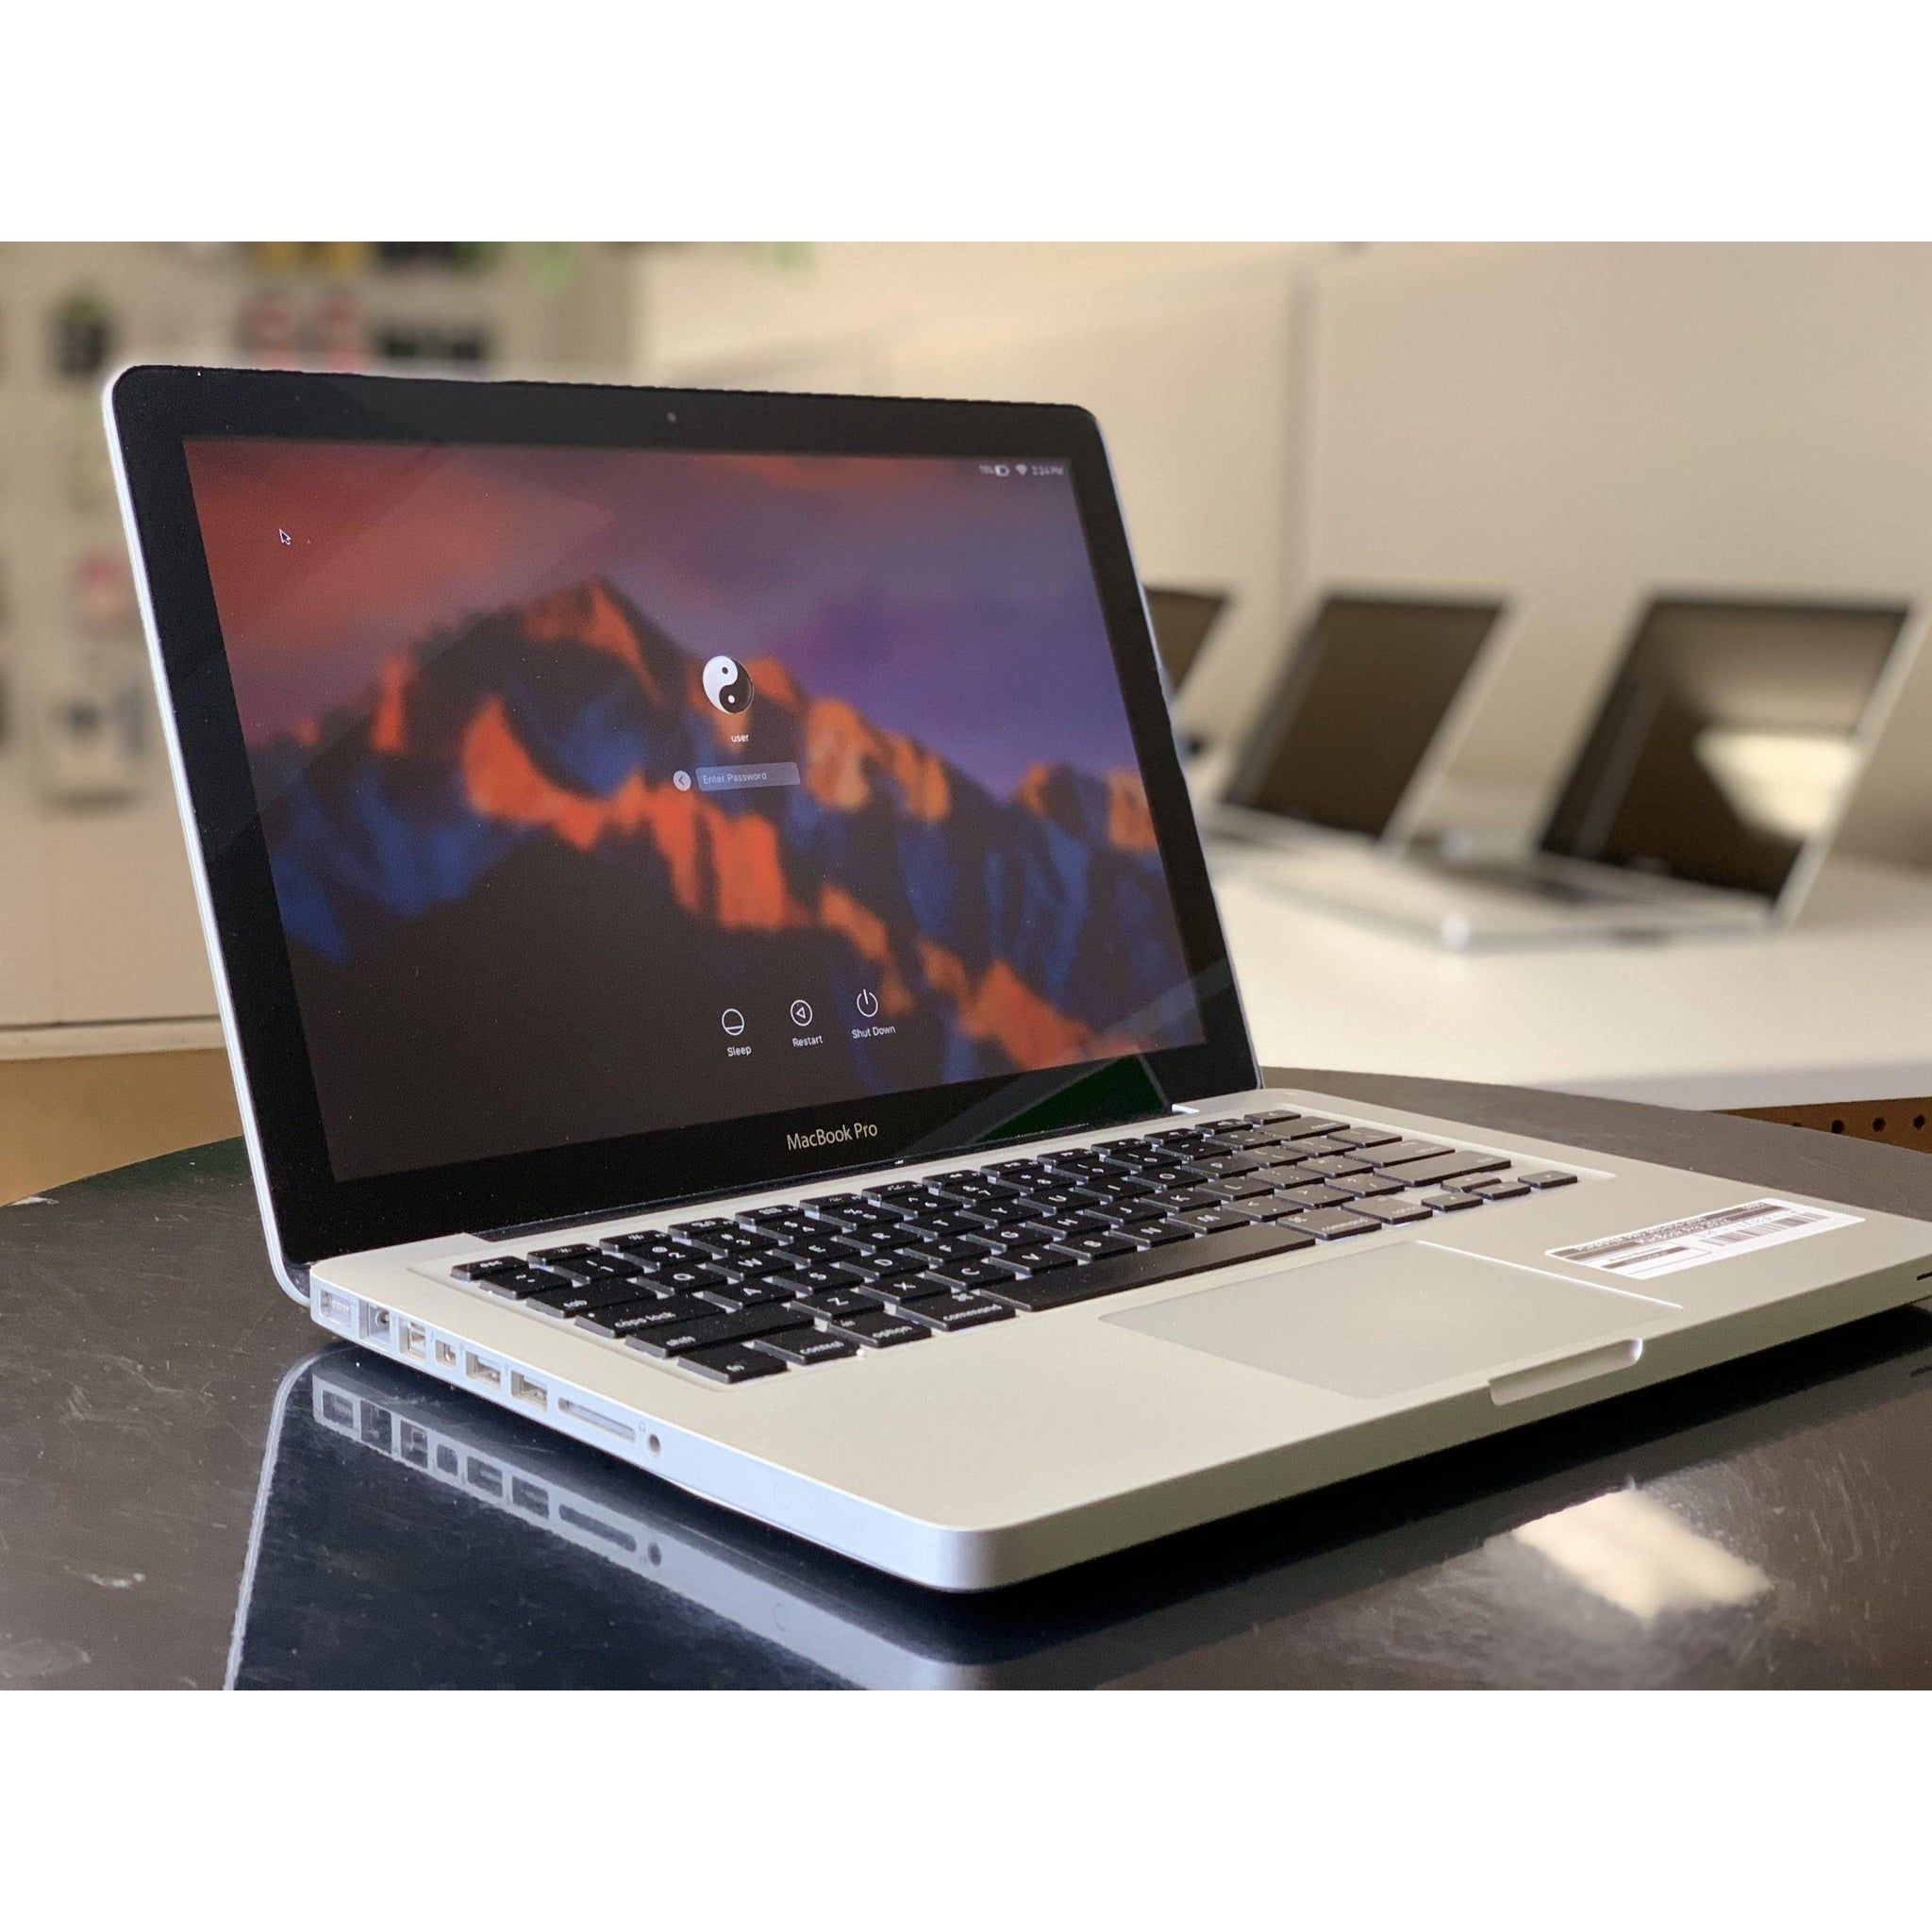 MacBook Pro (15-inch, Late 2011) - Intel Core i7 @ 2.2 GHz -16GB Ram - 256GB SSD